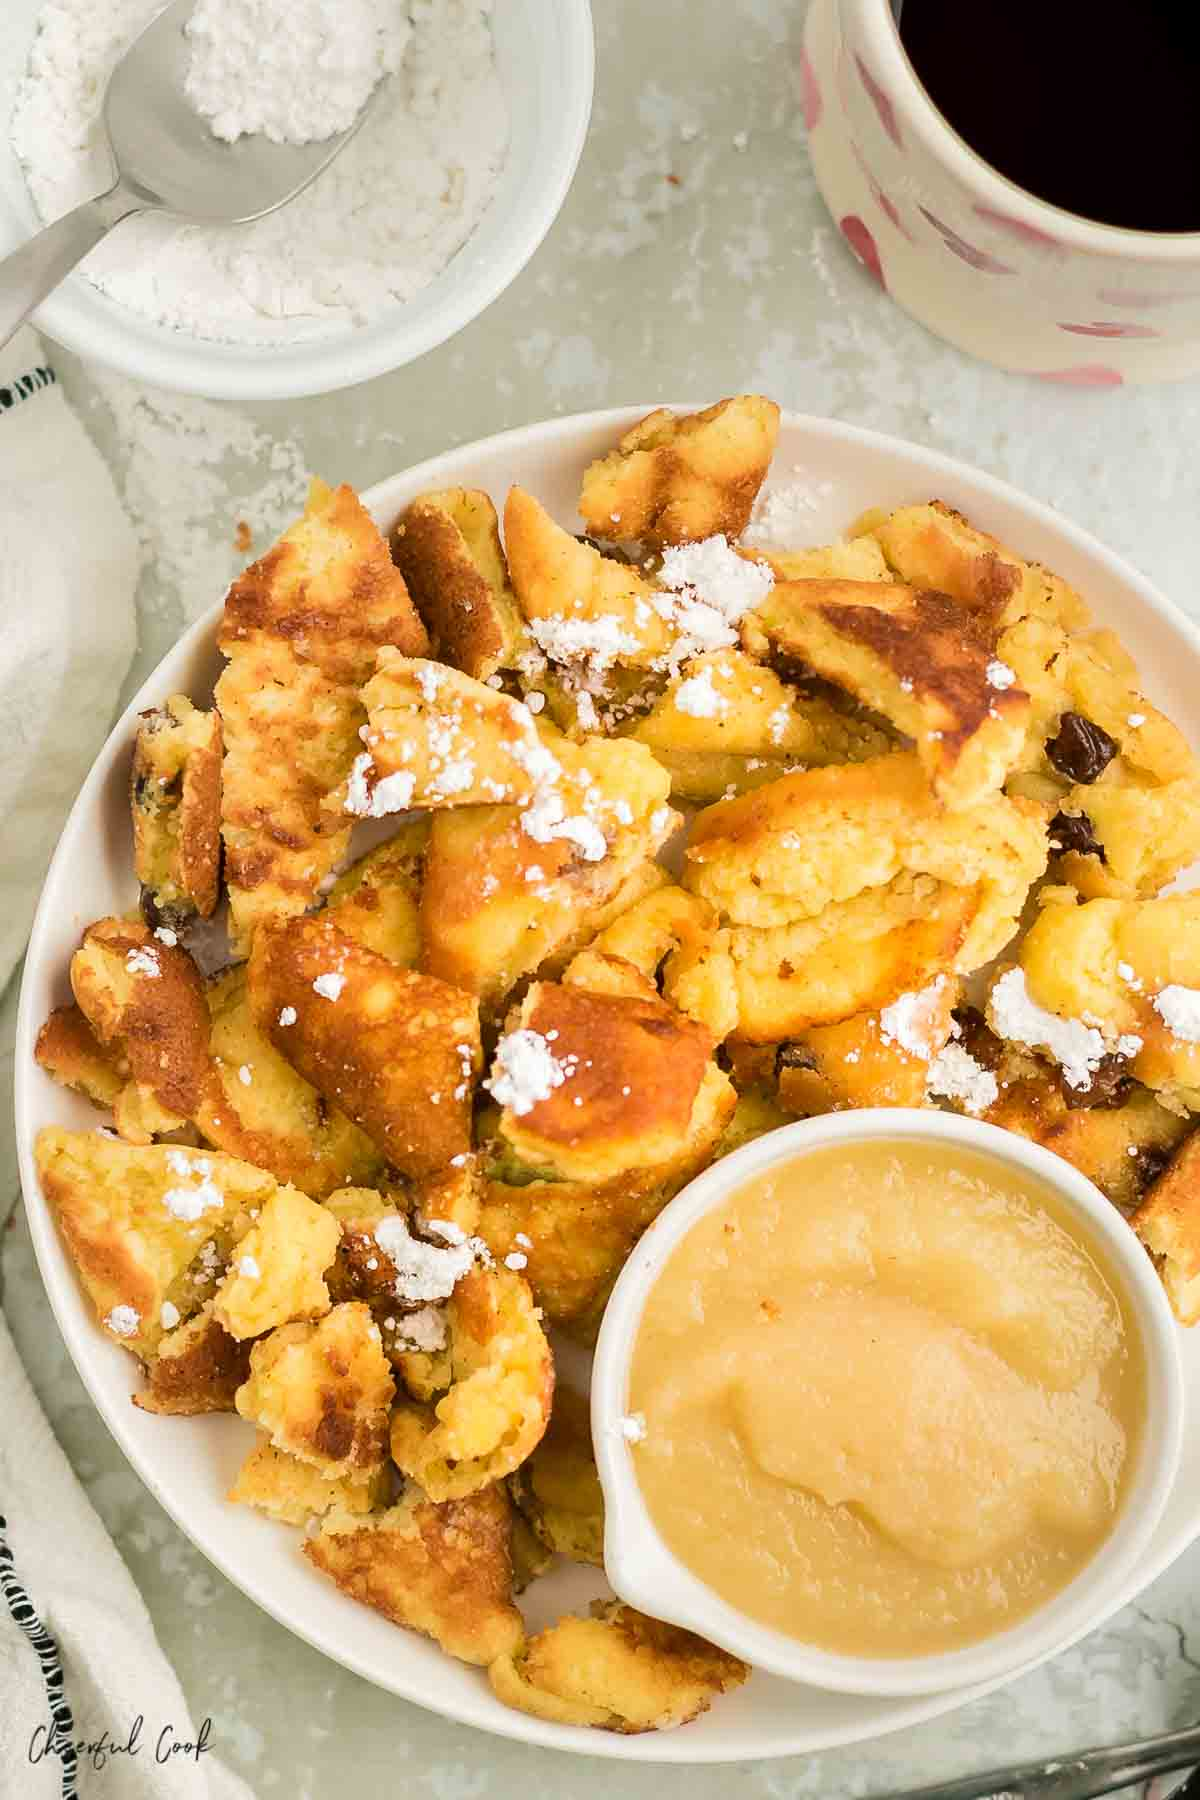 kaiserschmarrn on a white plate with applesauce and a white bowl of powdered sugar